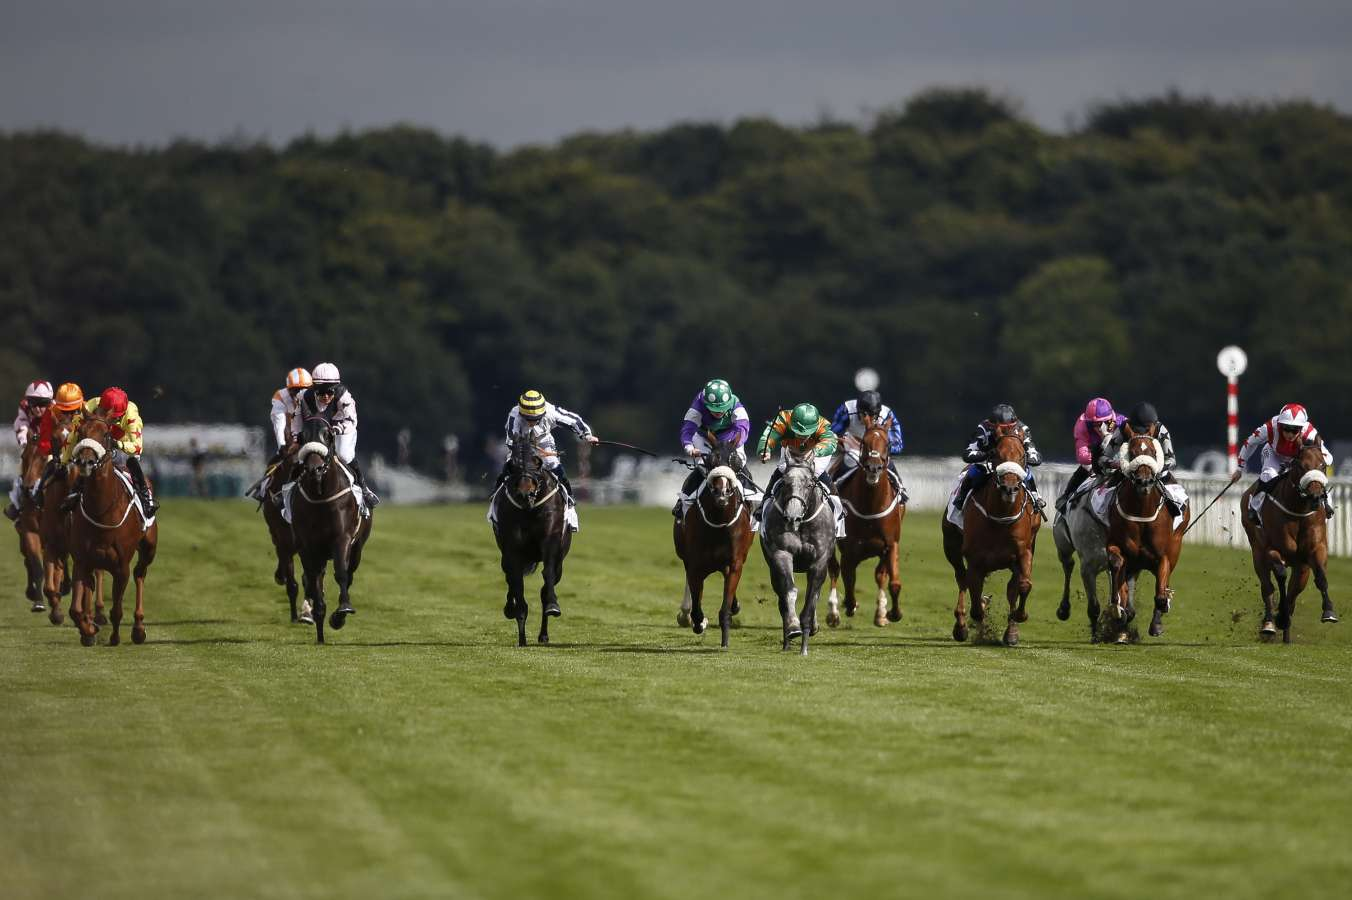 No British horse racing until Wednesday amid flu outbreak